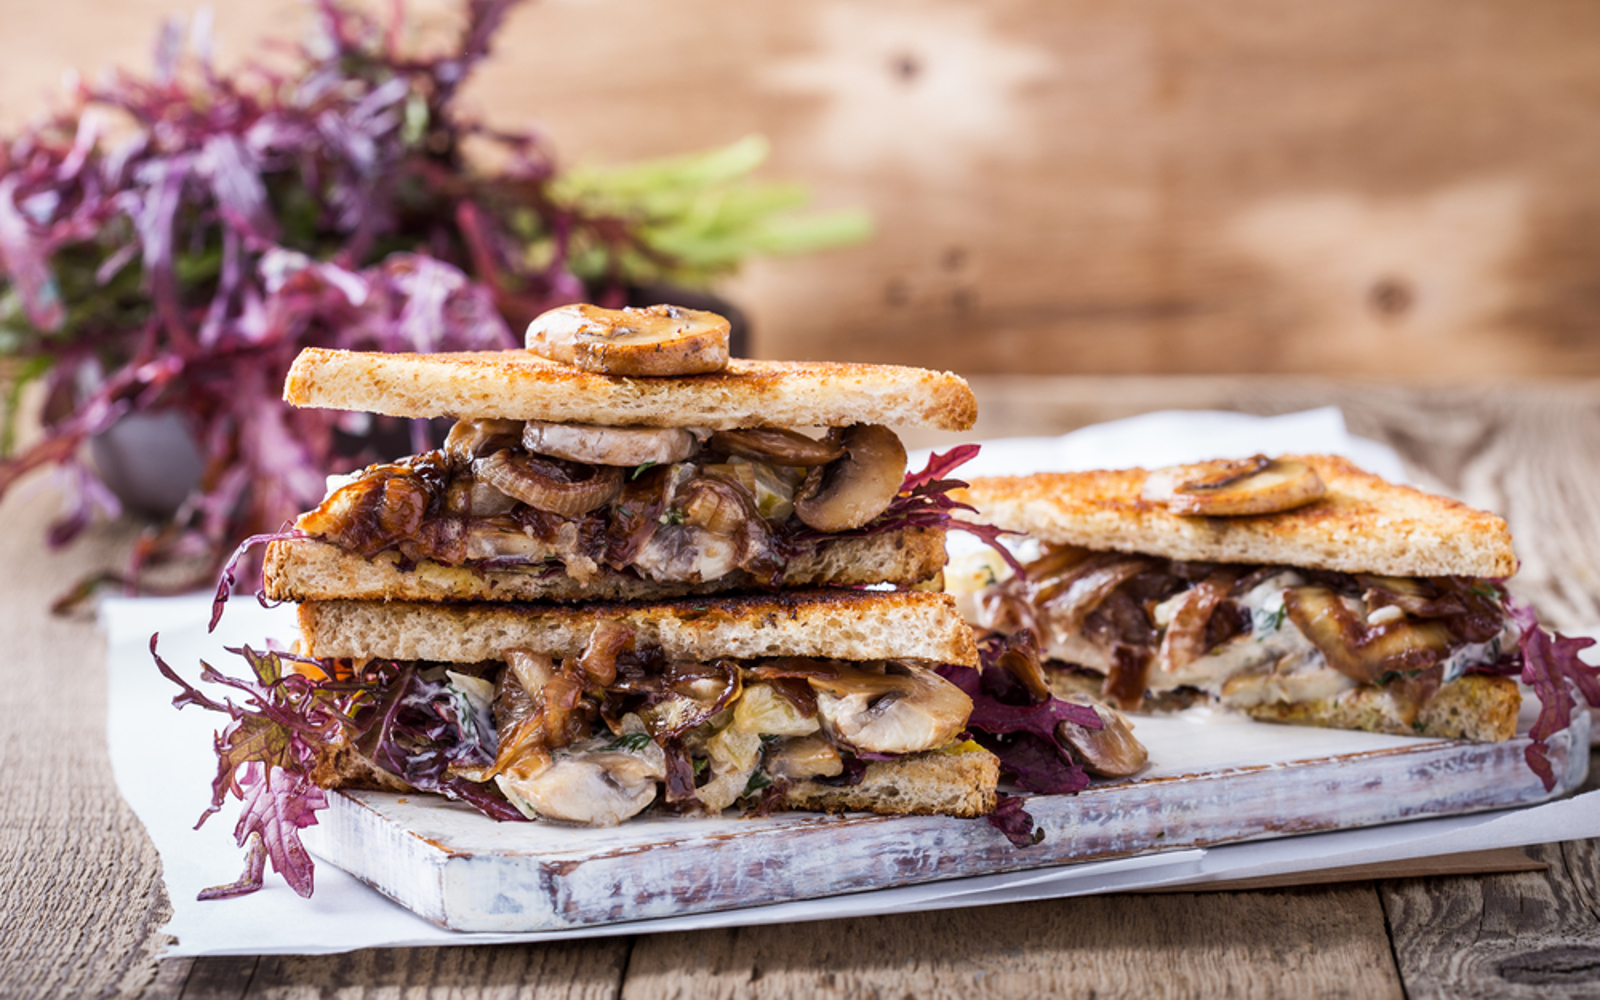 Vegan Fried panini with caramelized onions